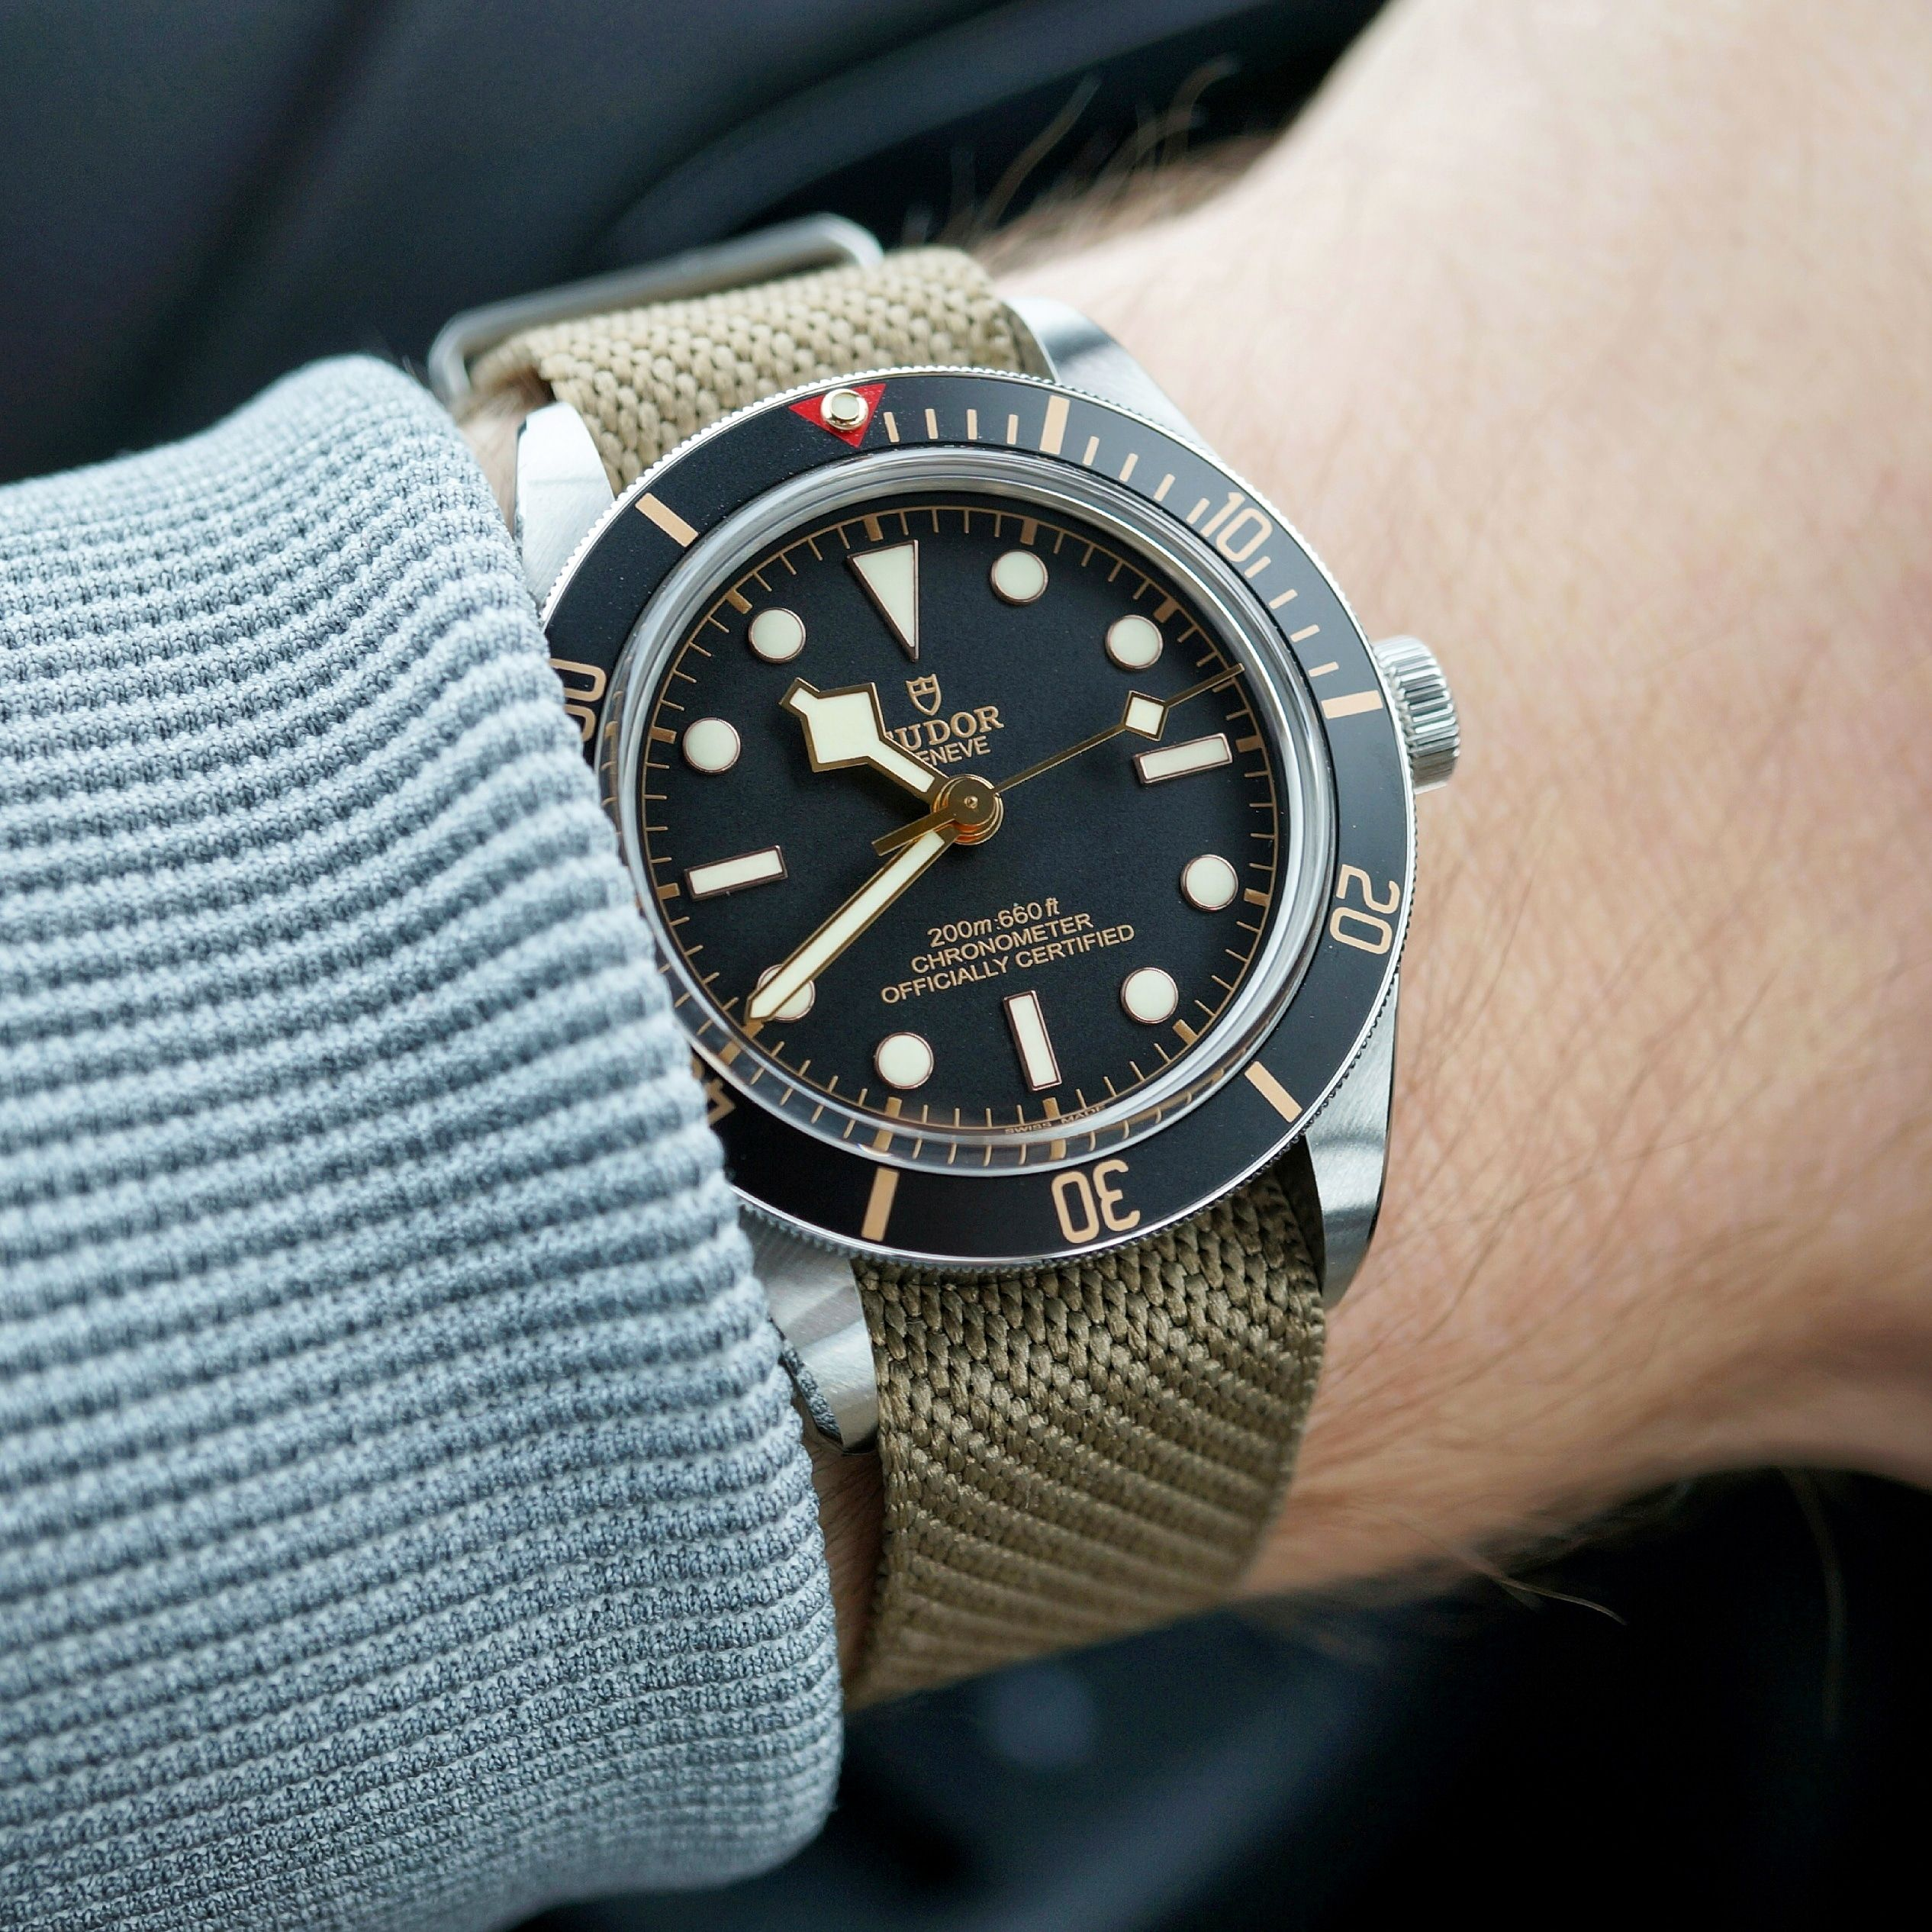 [Tudor] Black Bay 58 finally on the wrist! Watches for